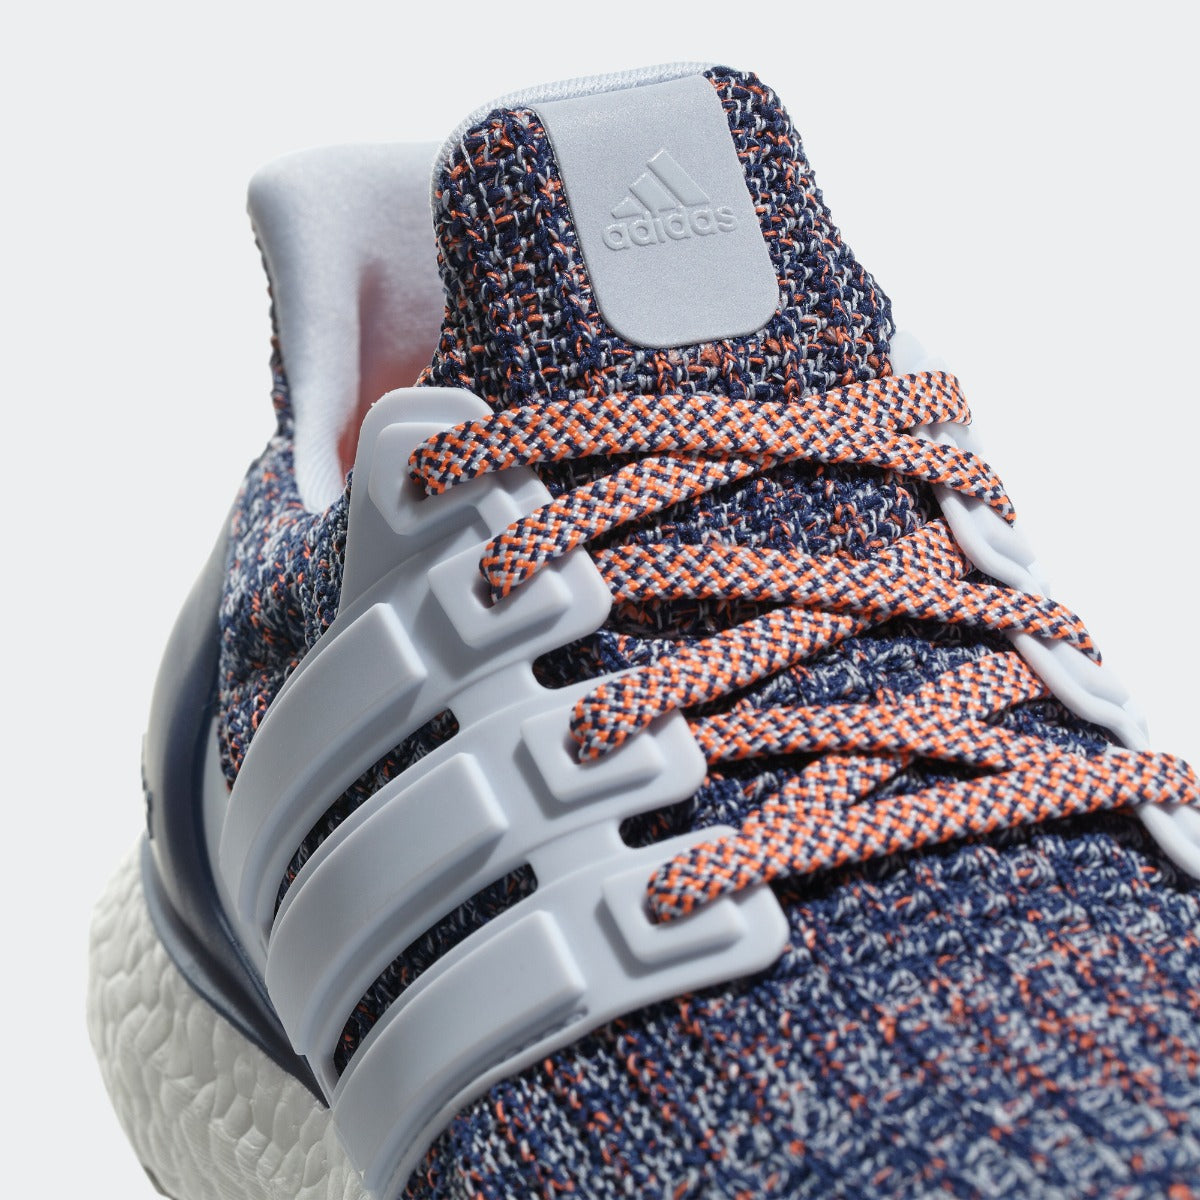 premium selection 145d8 da7f3 adidas Ultraboost Shoes Aero Blue BB6148 | Chicago City Sports